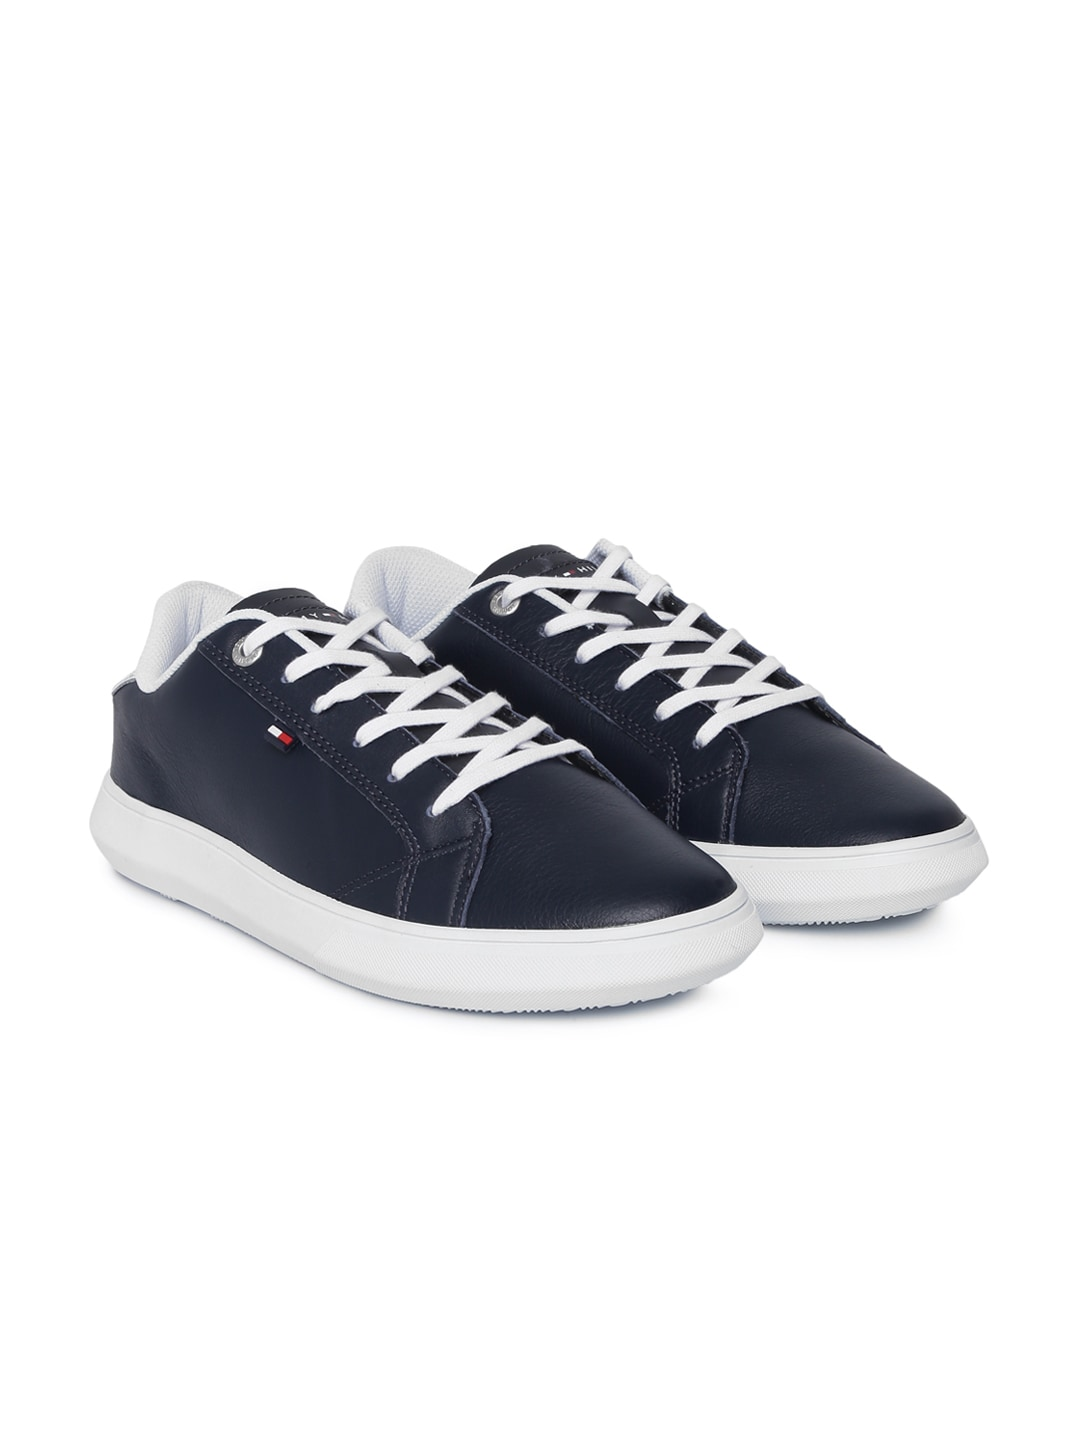 57806830184f Tommy Hilfiger Shoes - Buy Tommy Hilfiger Shoes Online - Myntra